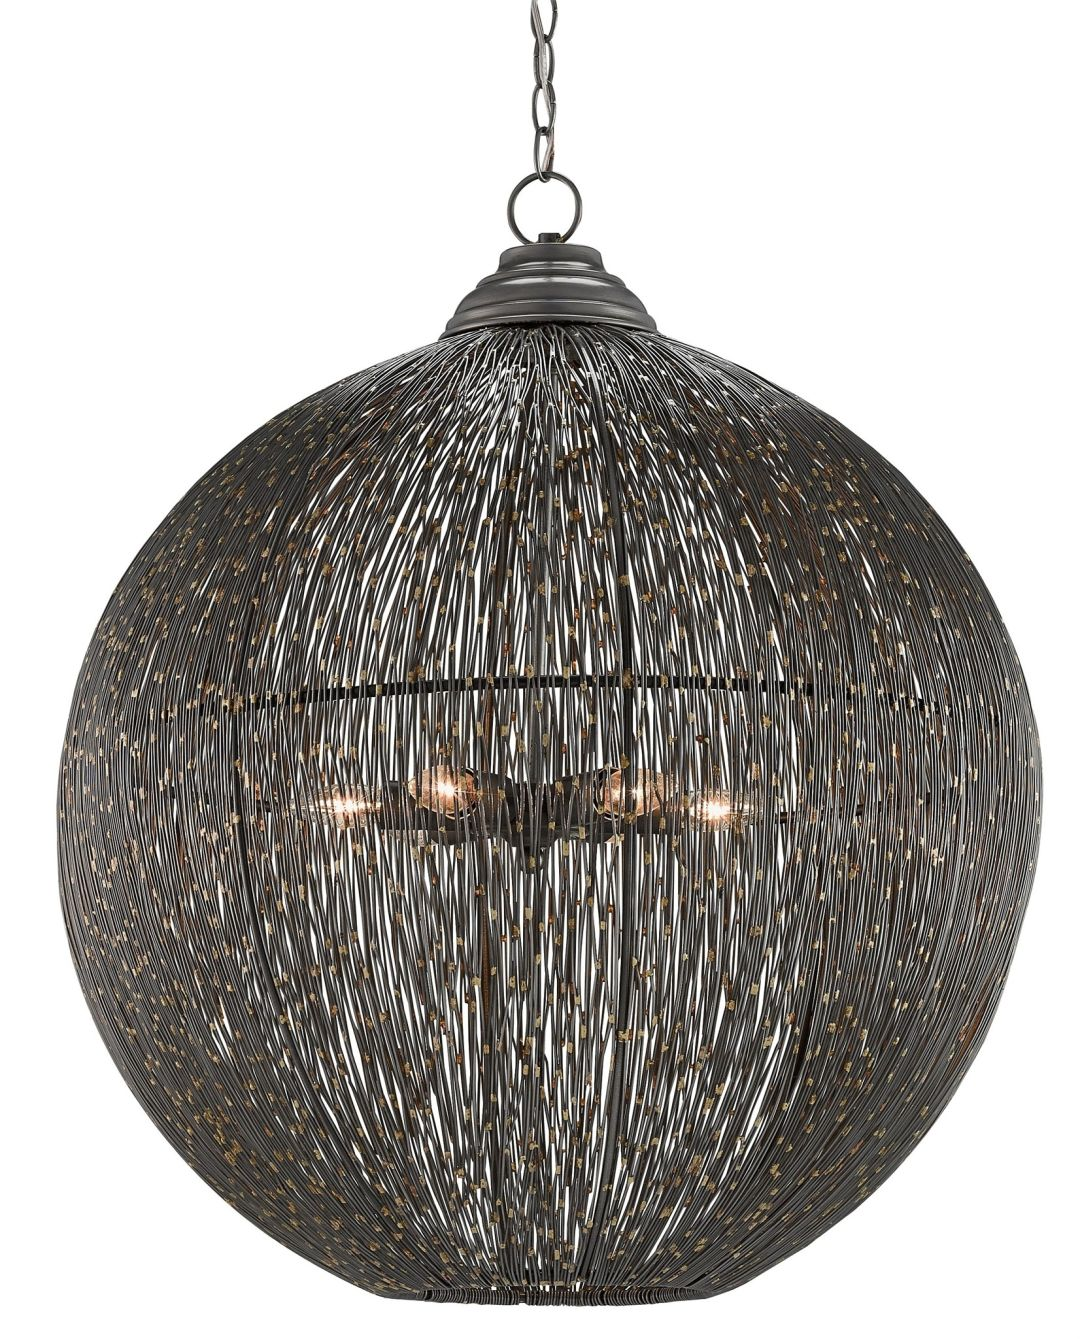 Orb chandelier oon6ct